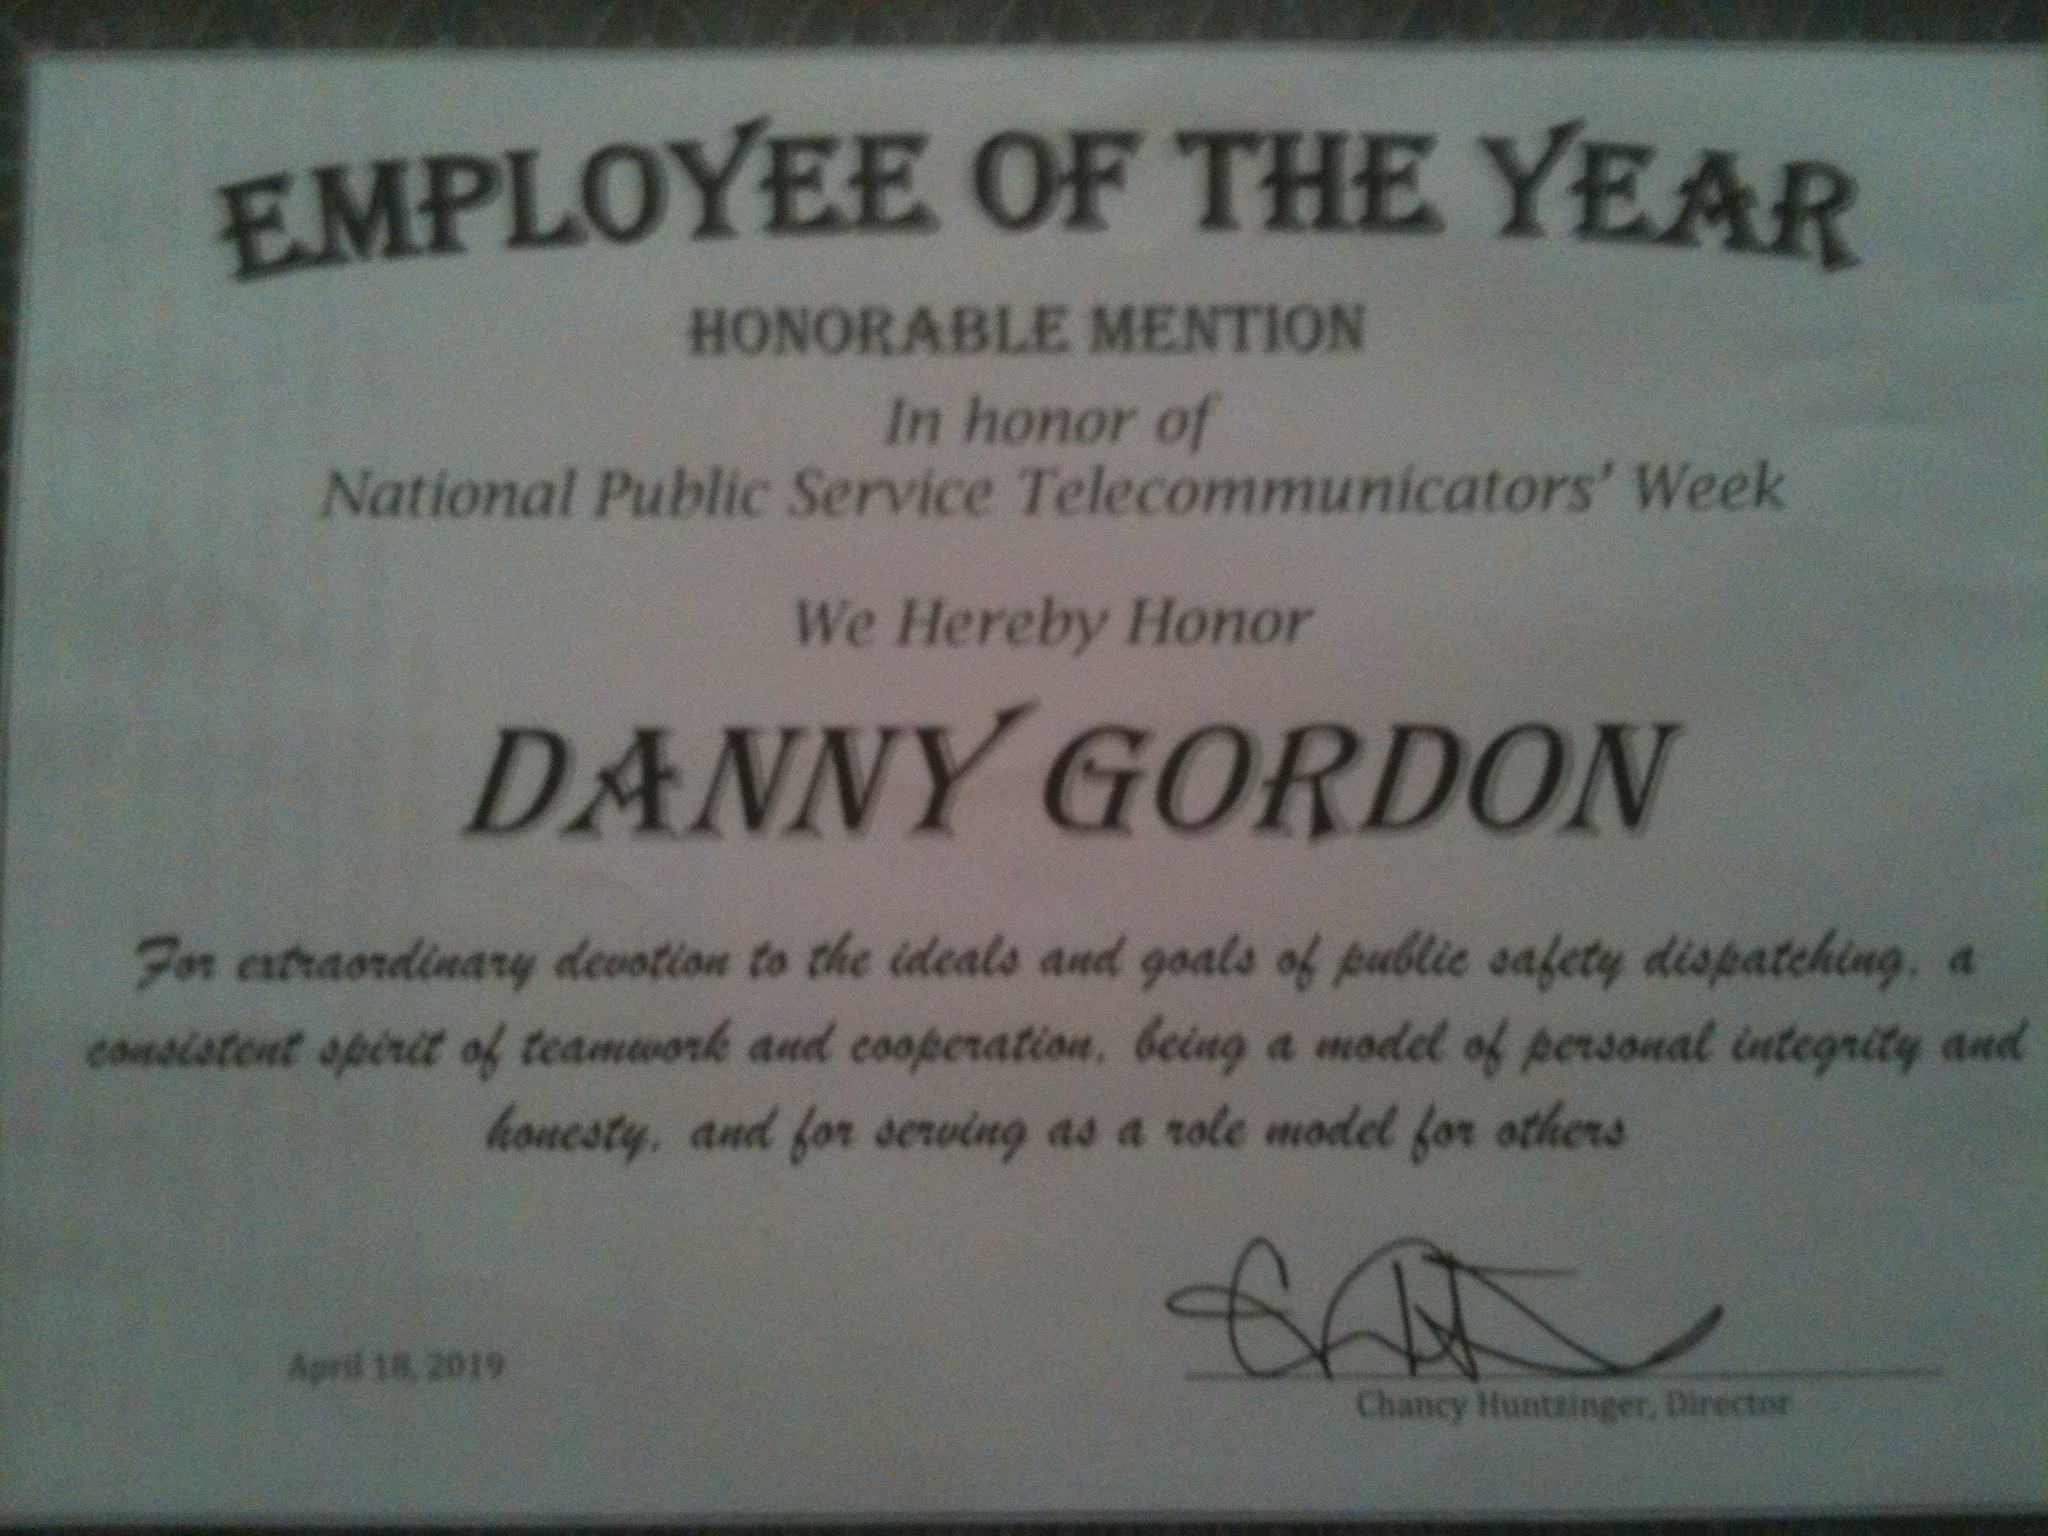 employee of the year honorable mention 2019